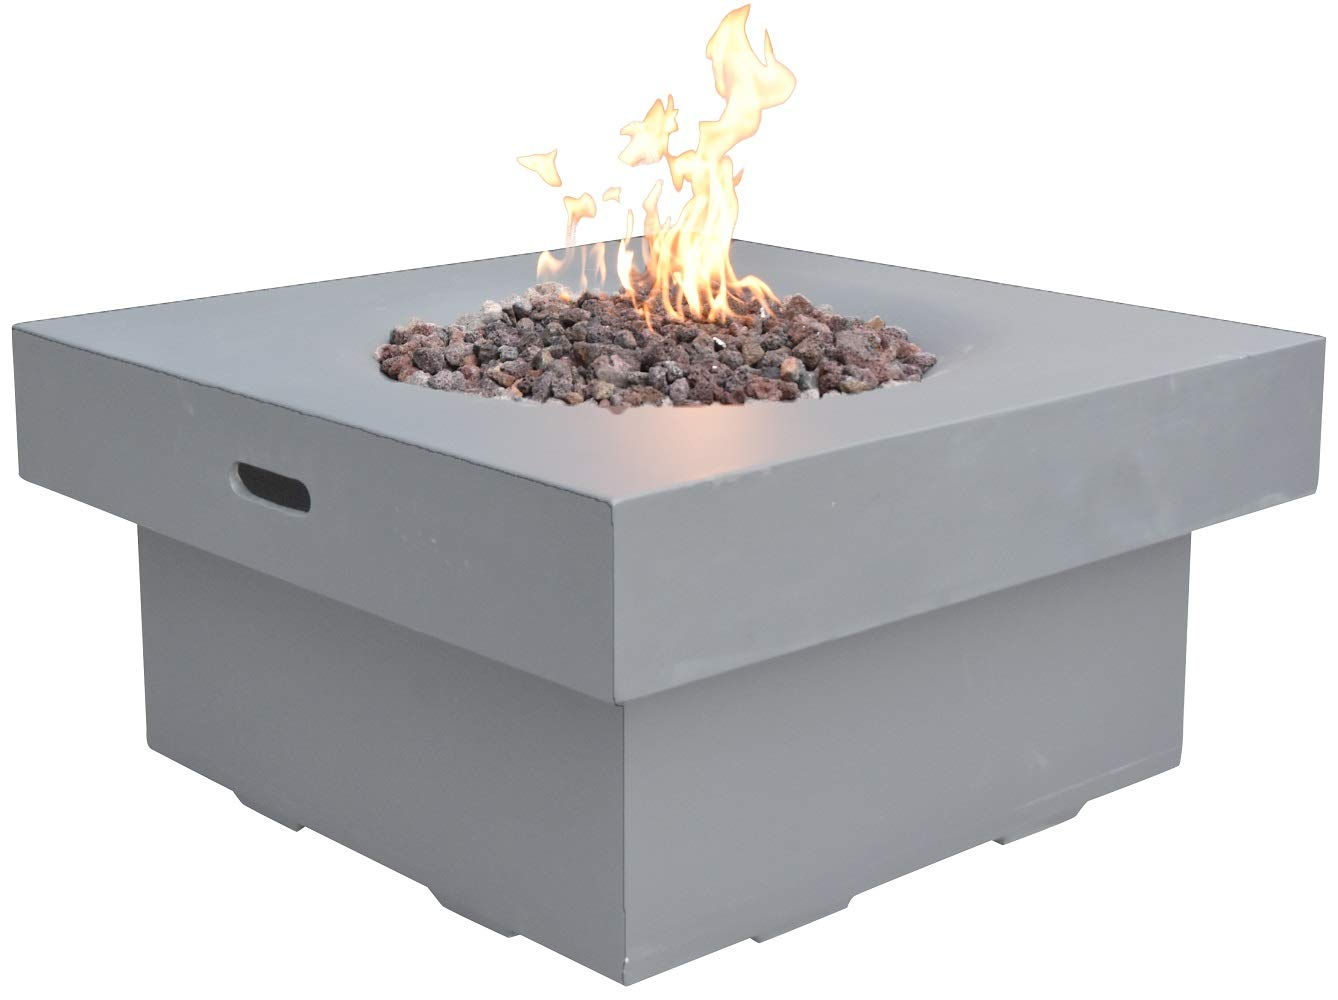 Modeno Brandford Outdoor Fire Pit Propane Table 34 Inches Square Firepit Table Concrete High Floor Patio Heater Electronic Ignition Backyard Fireplace Cover Lava Rock Included